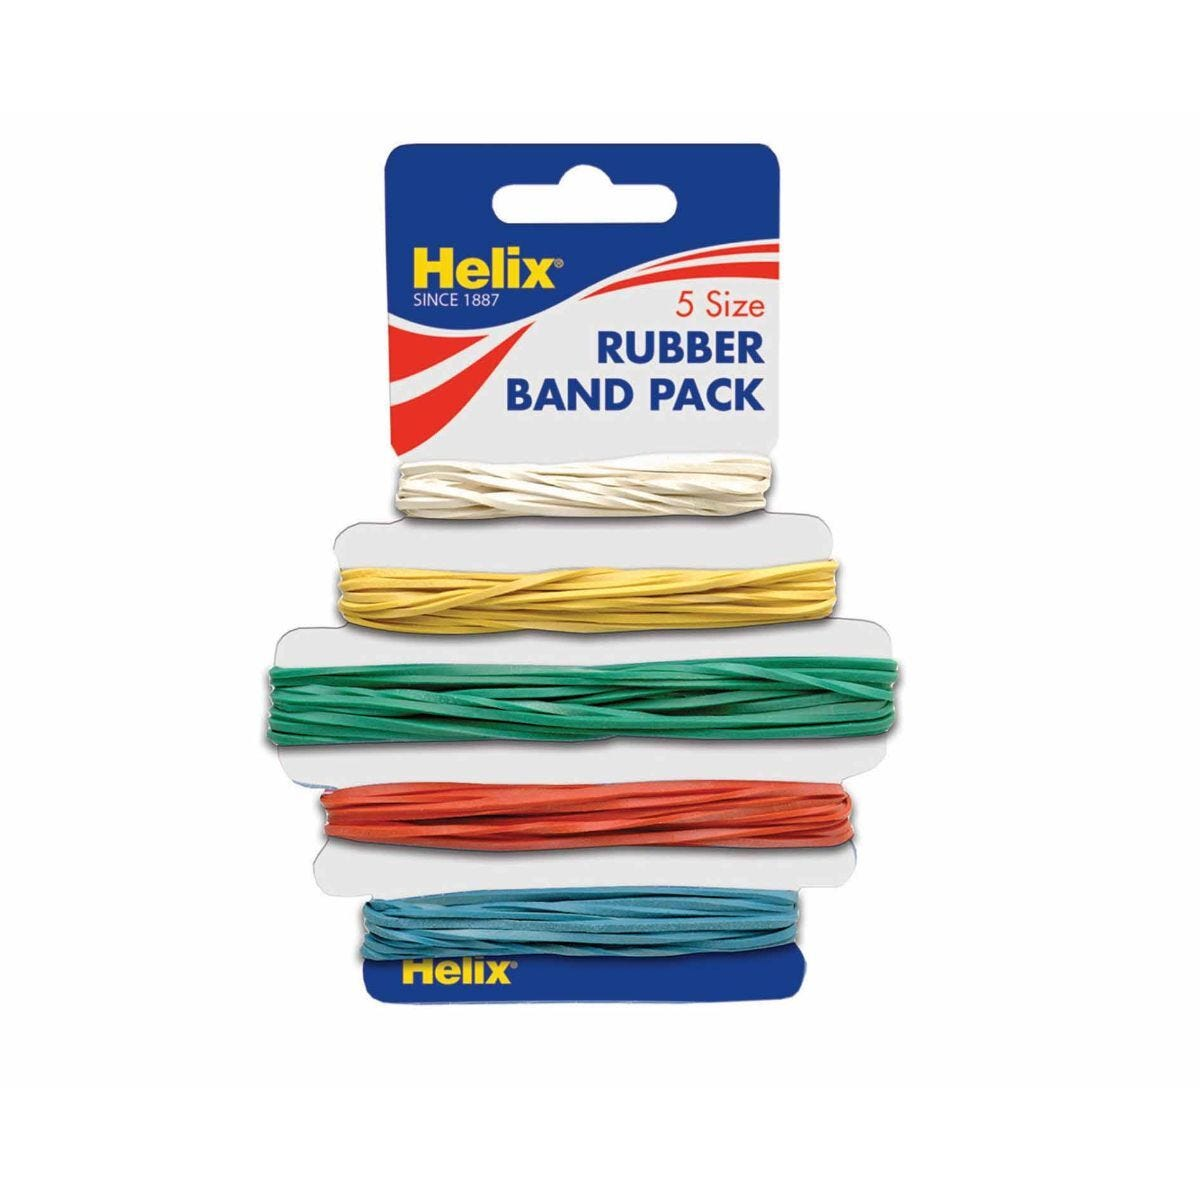 Helix Rubber Bands Pack